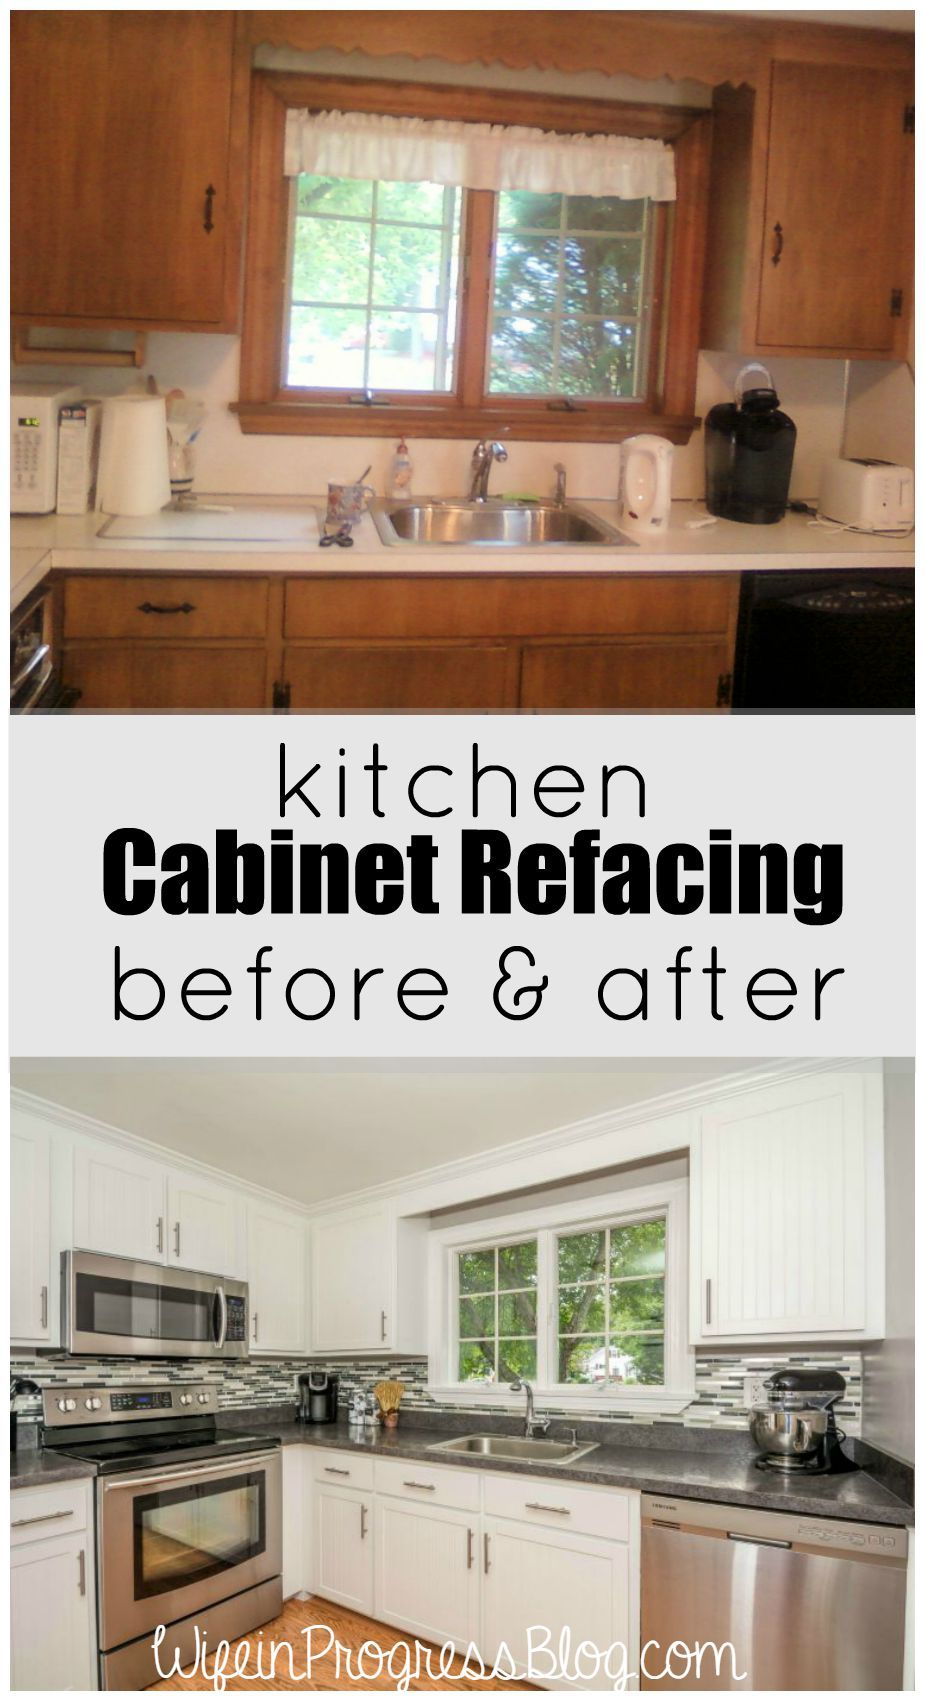 Kitchen Cabinet Refacing - The Process | Pinterest | Kitchens and House